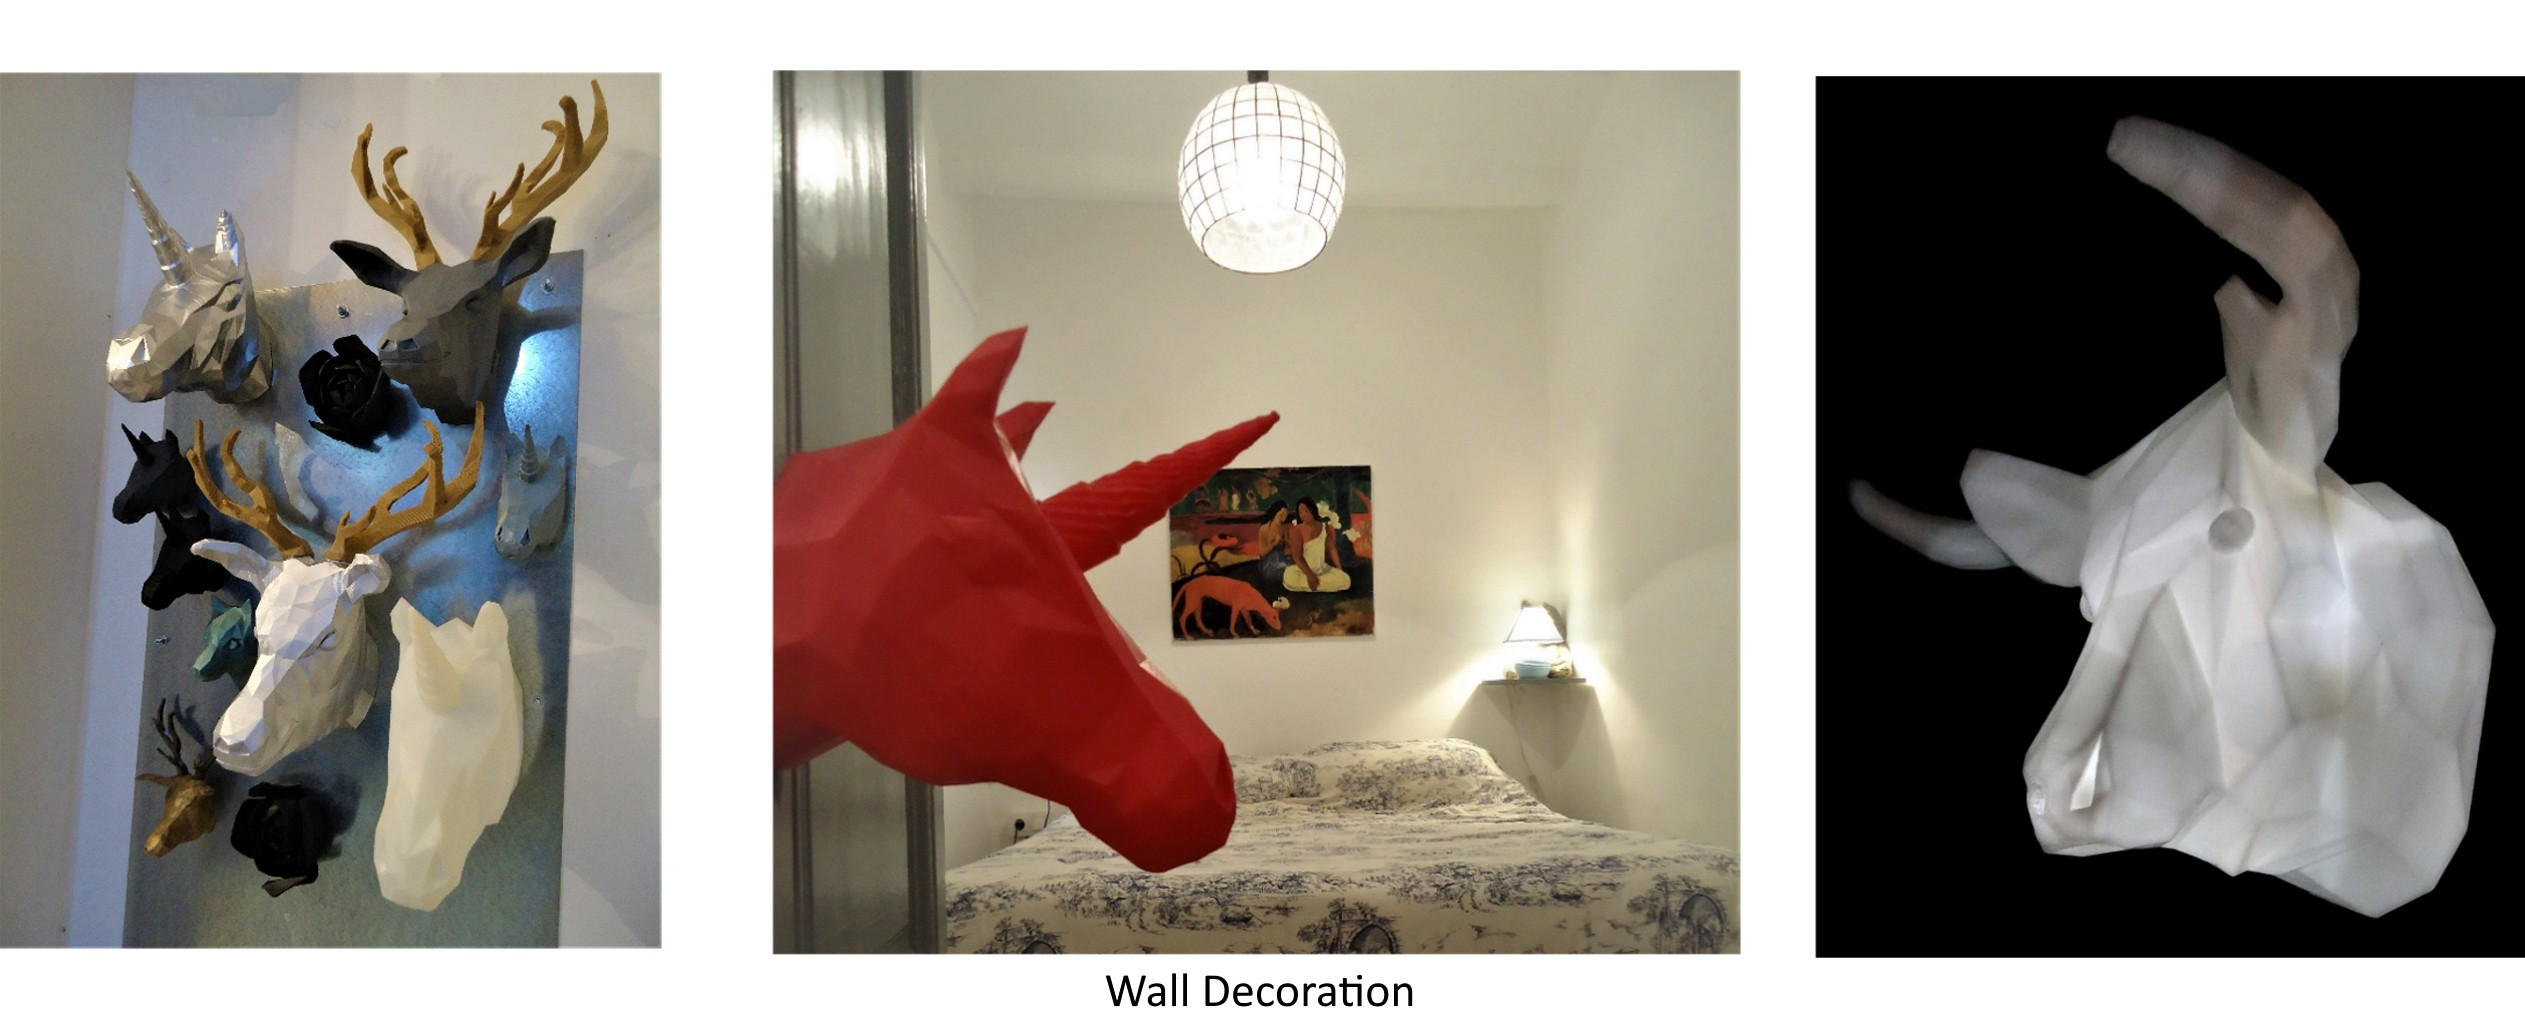 Wall decoration